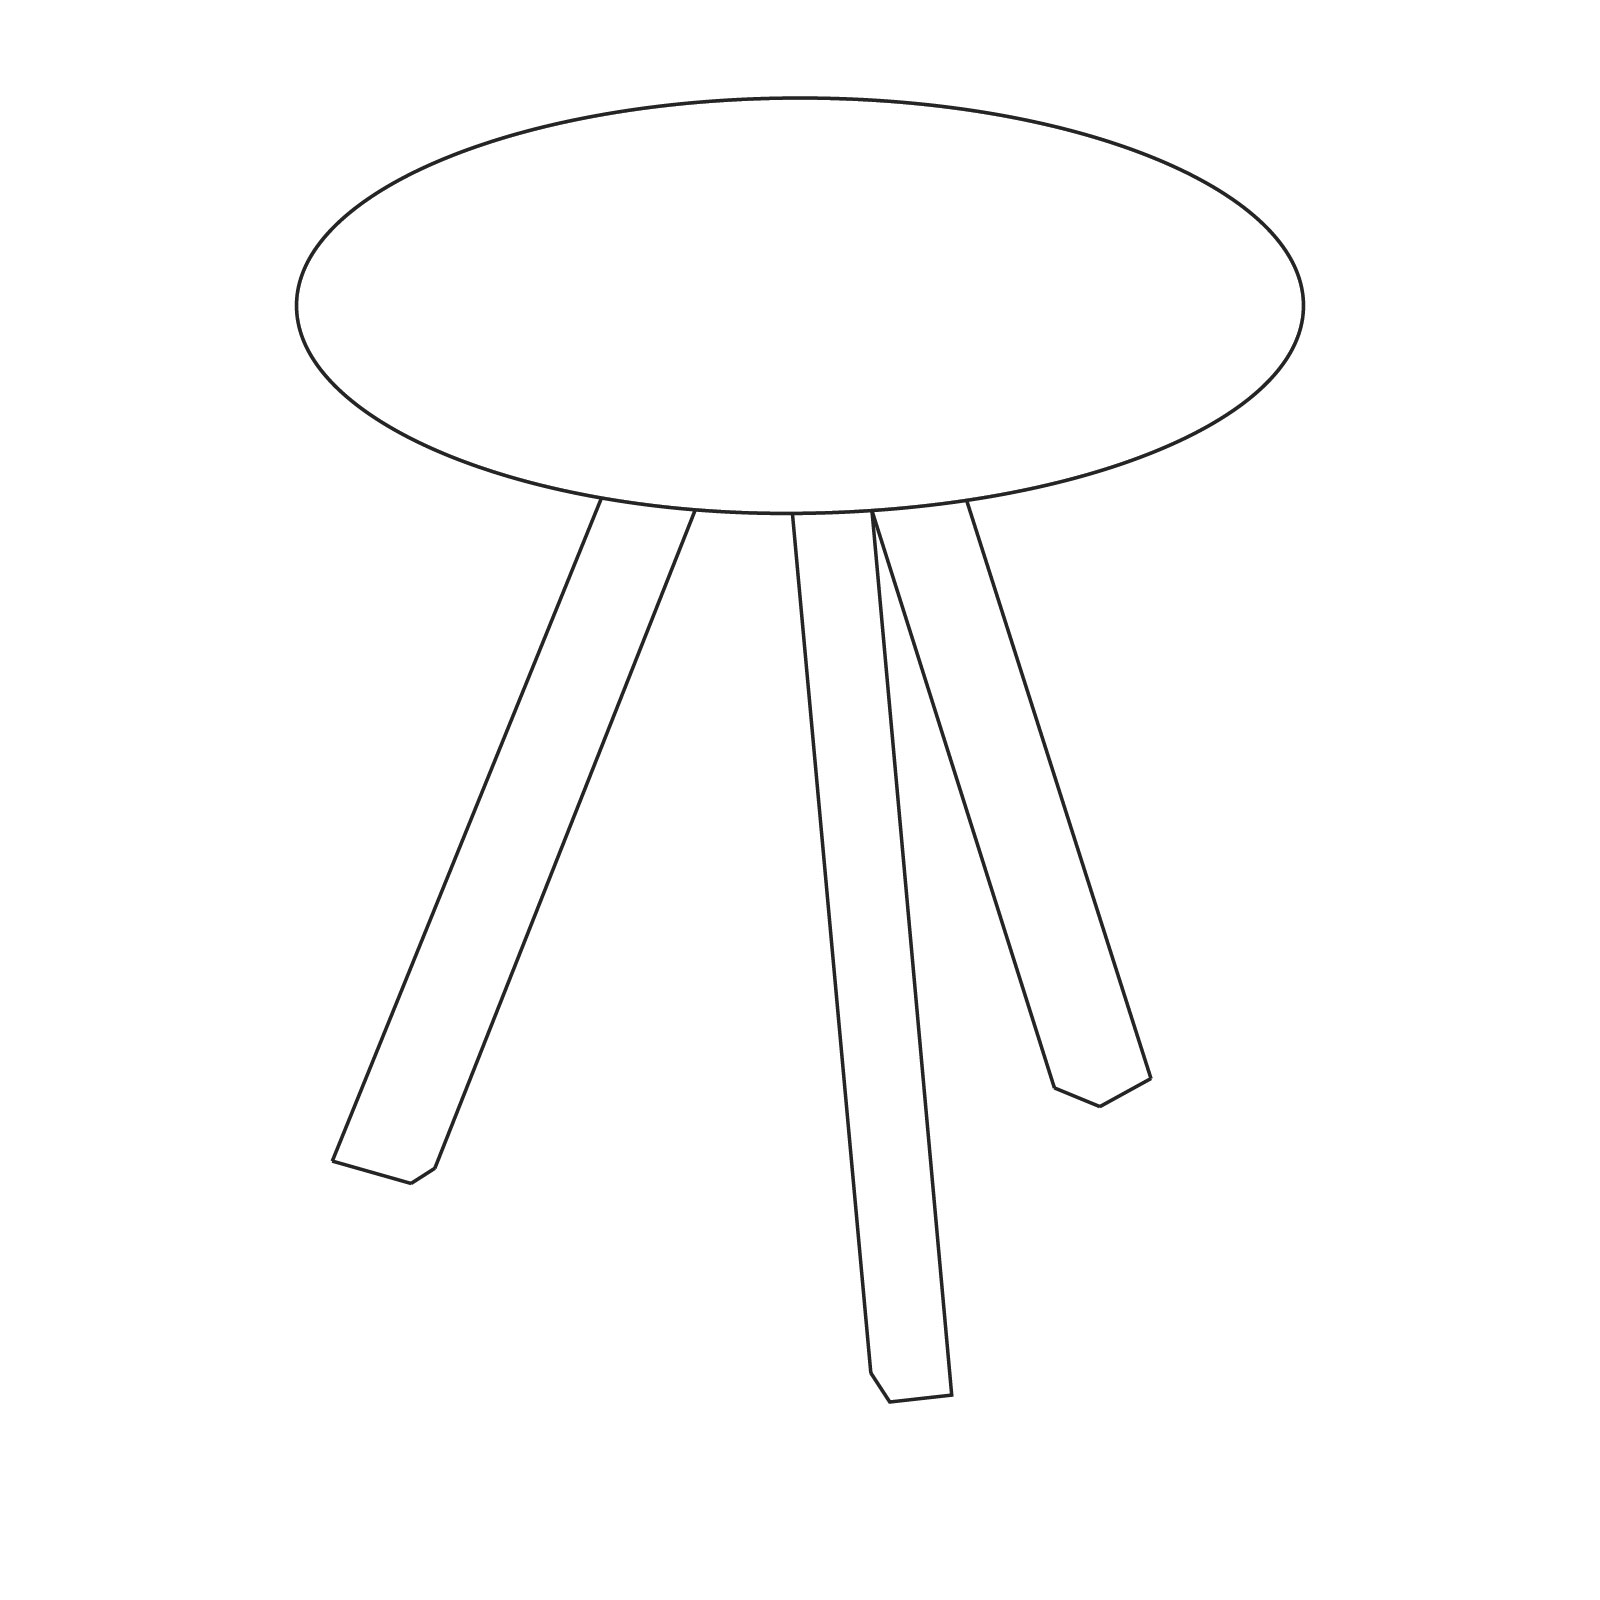 A line drawing of Copenhague Table–Round.